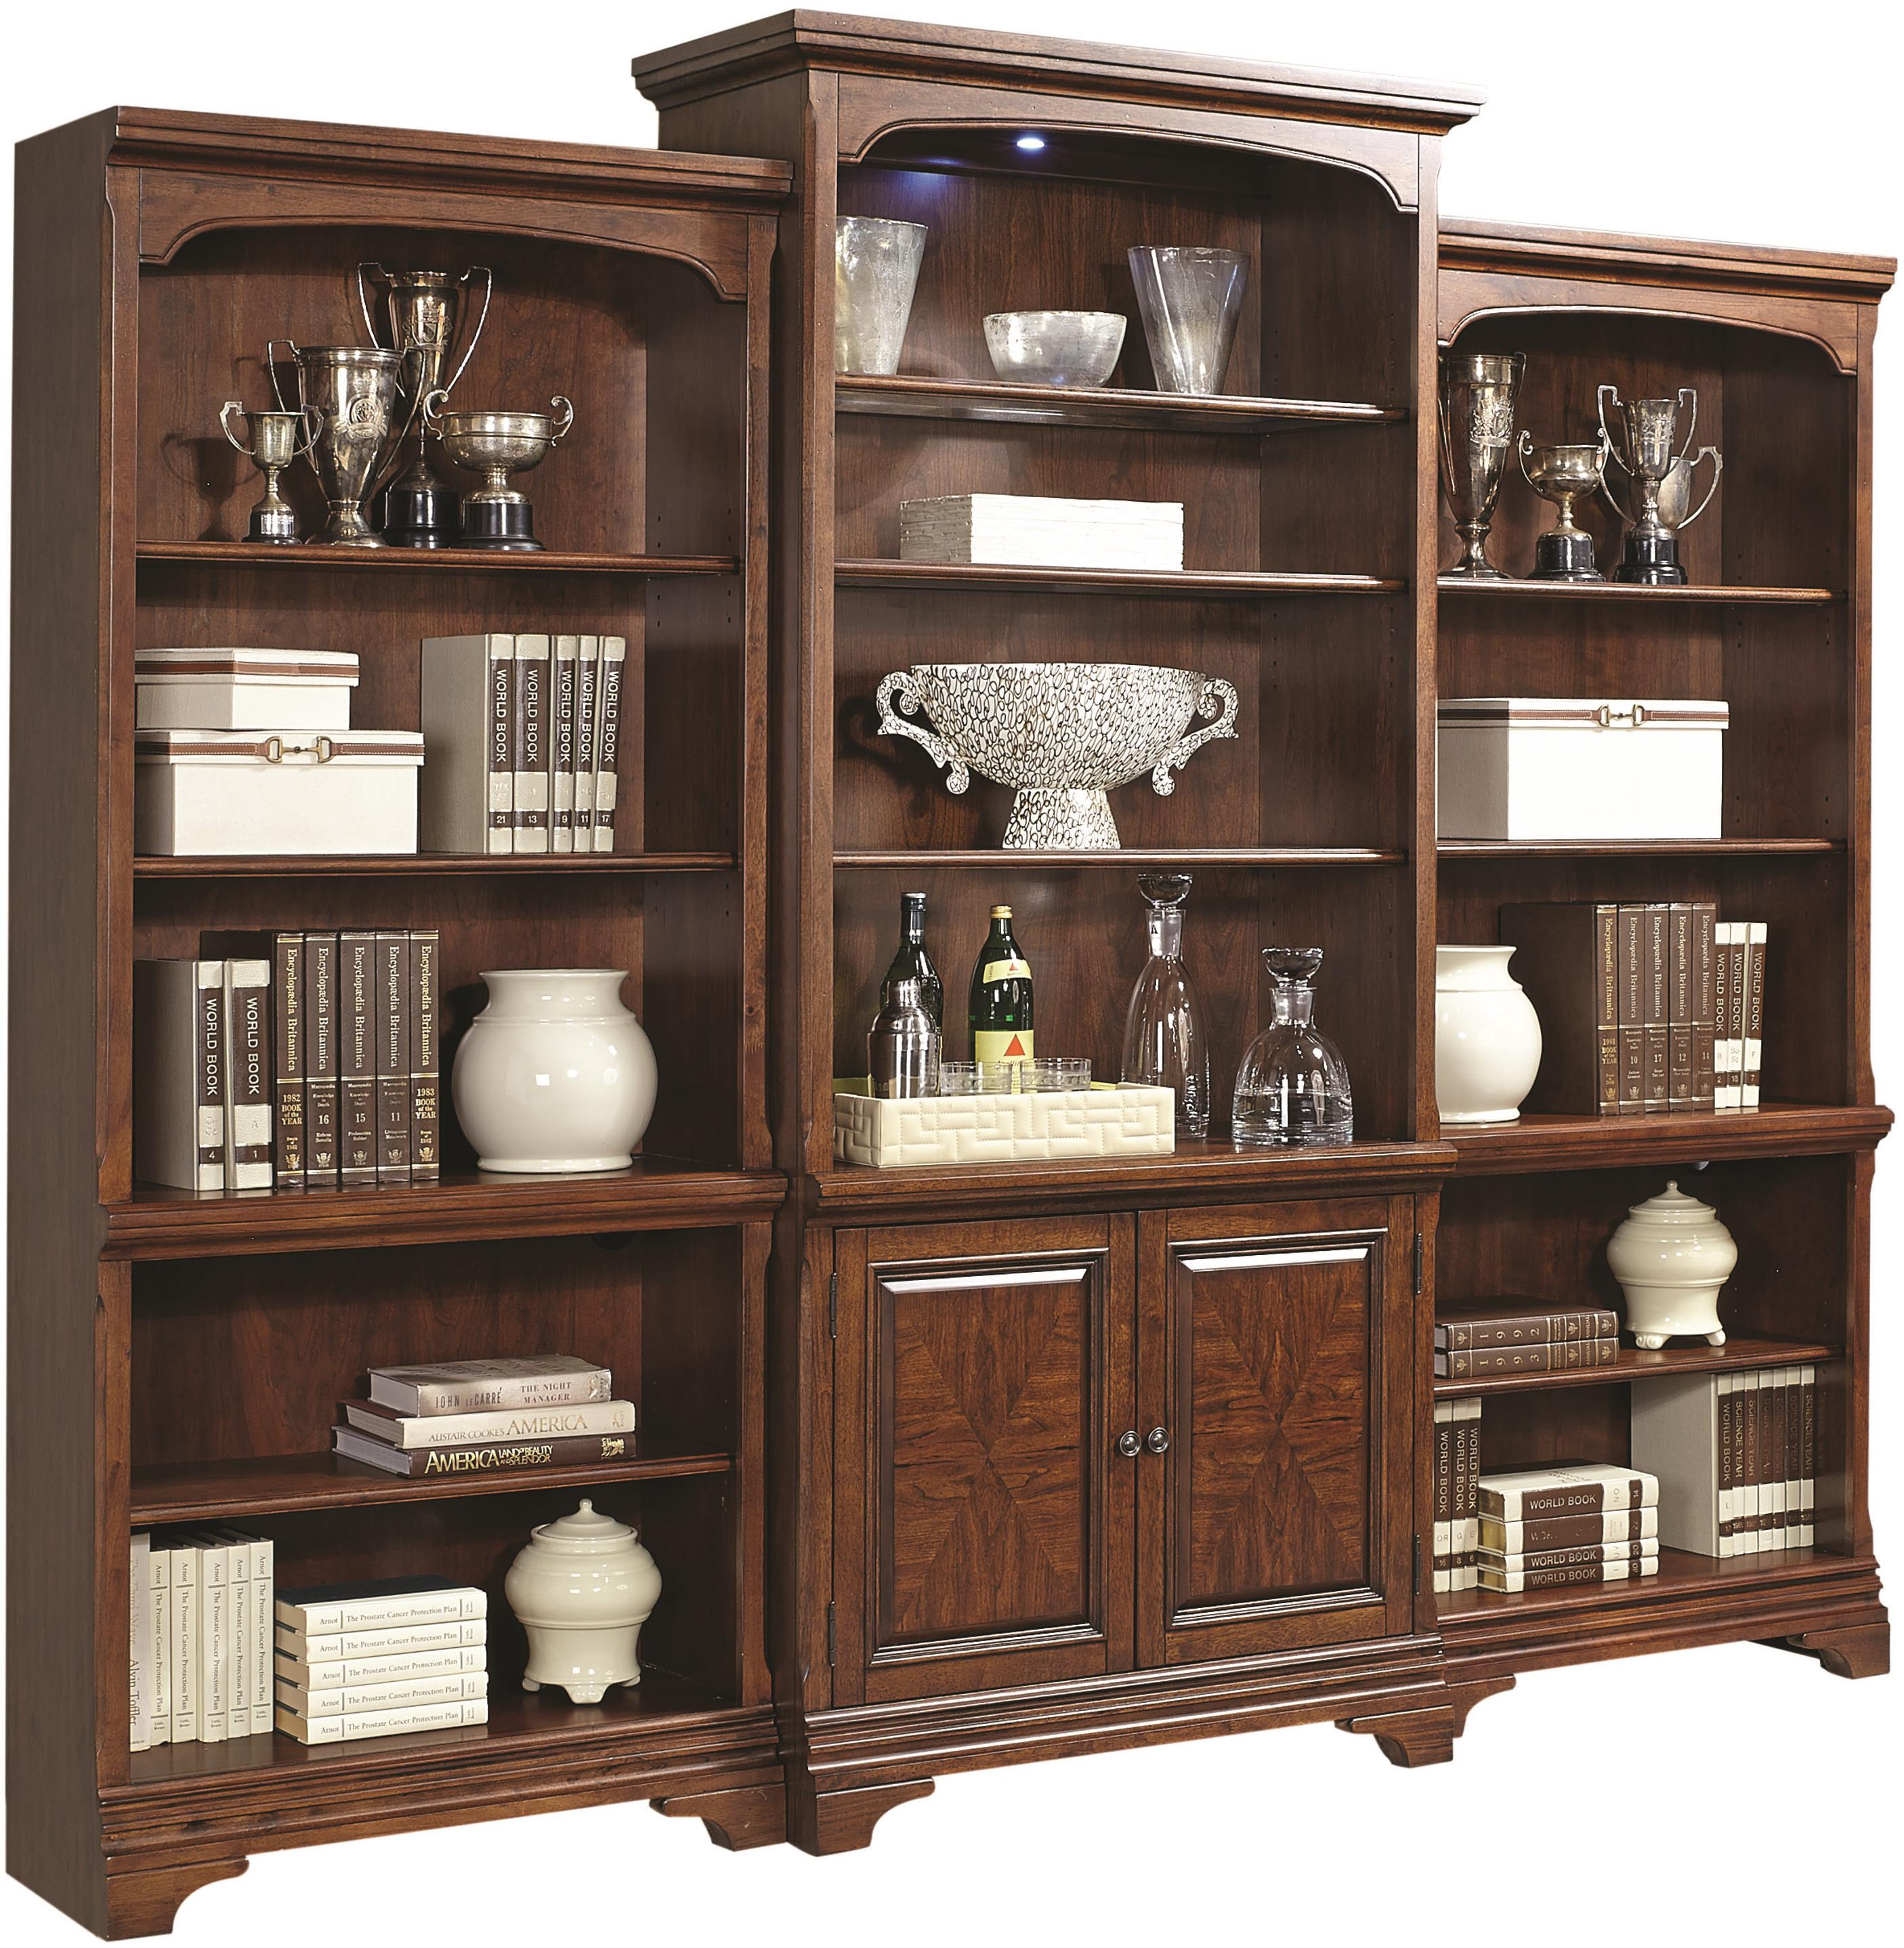 Aspenhome Hawthorne Bookcase Wall - Item Number: I26-336+2x333